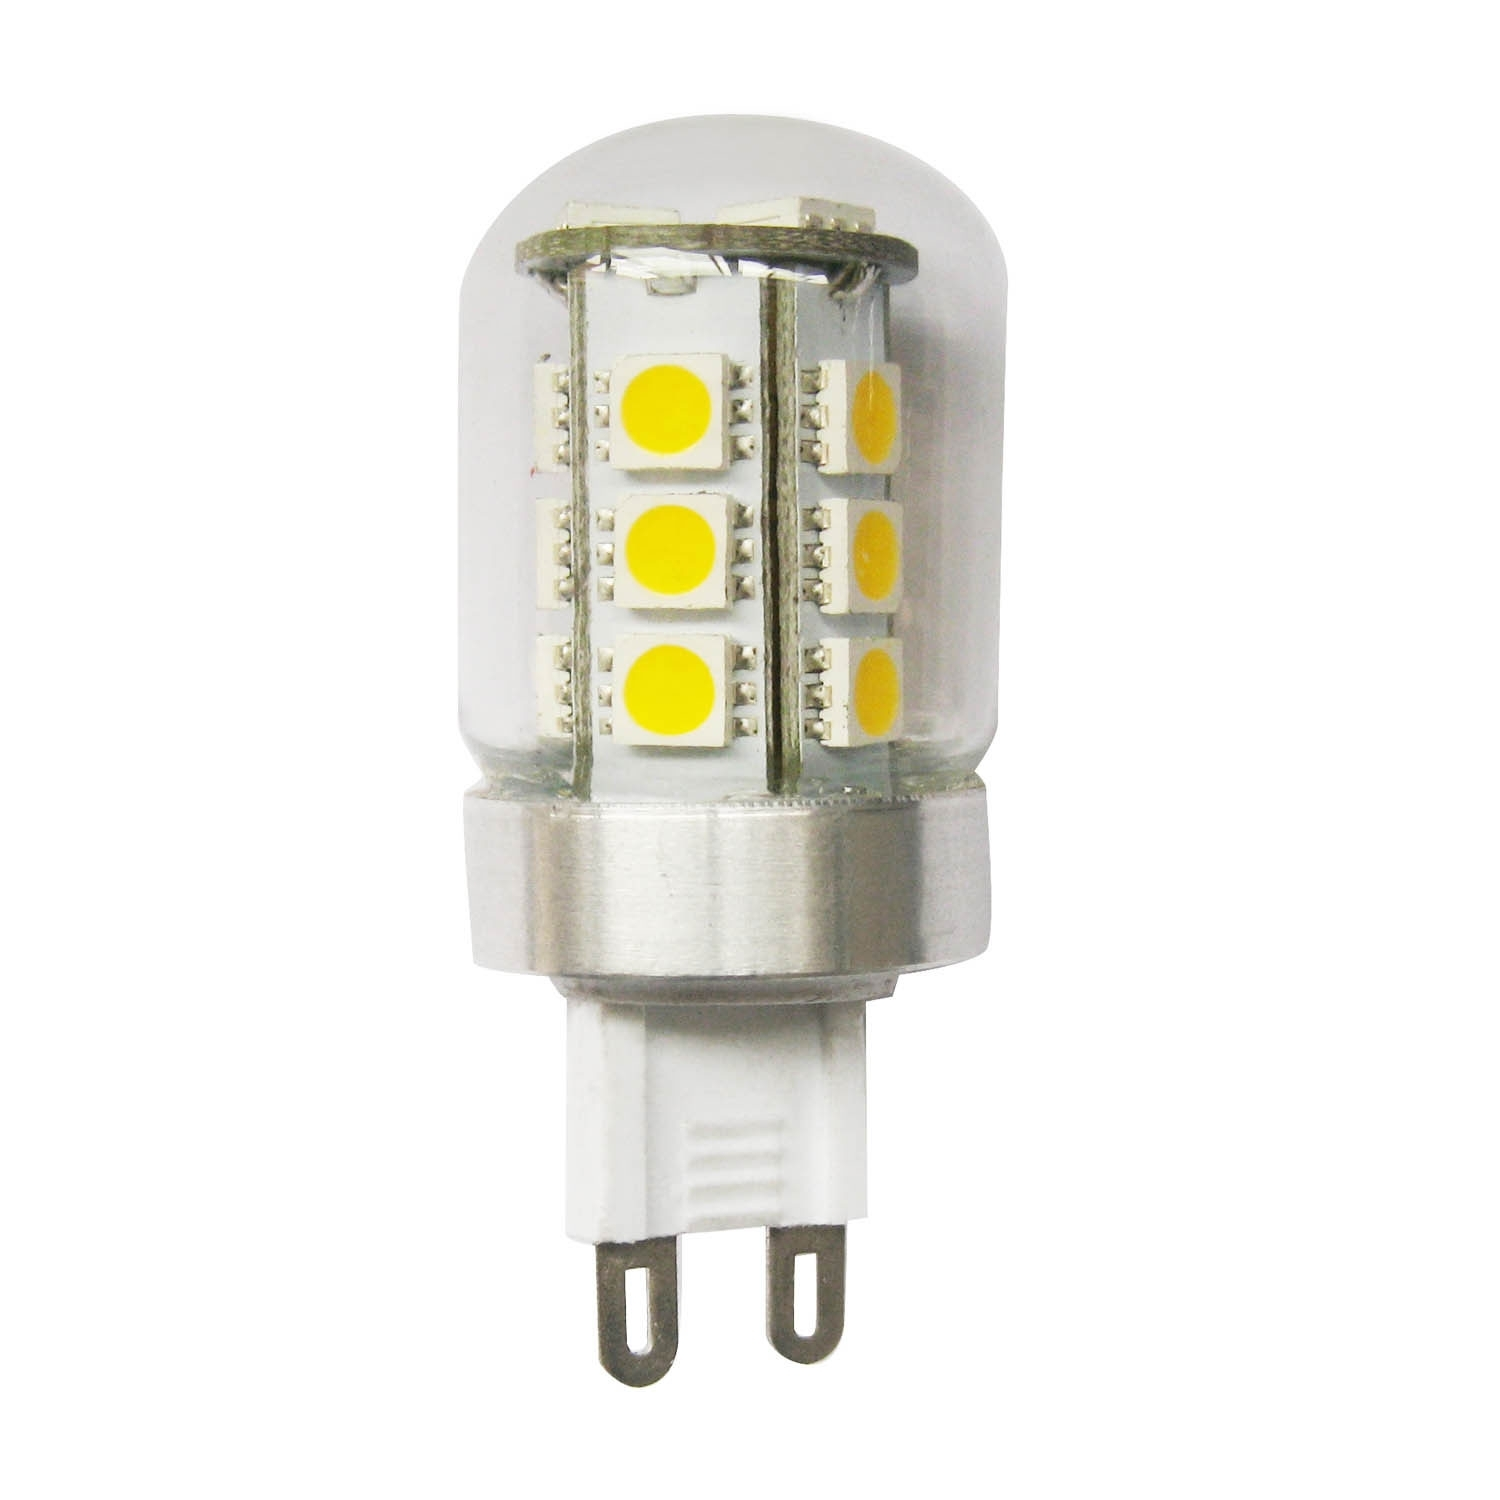 Bombilla led g9 3 5w 6500k bombillas led g9 - Bombilla led g9 ...